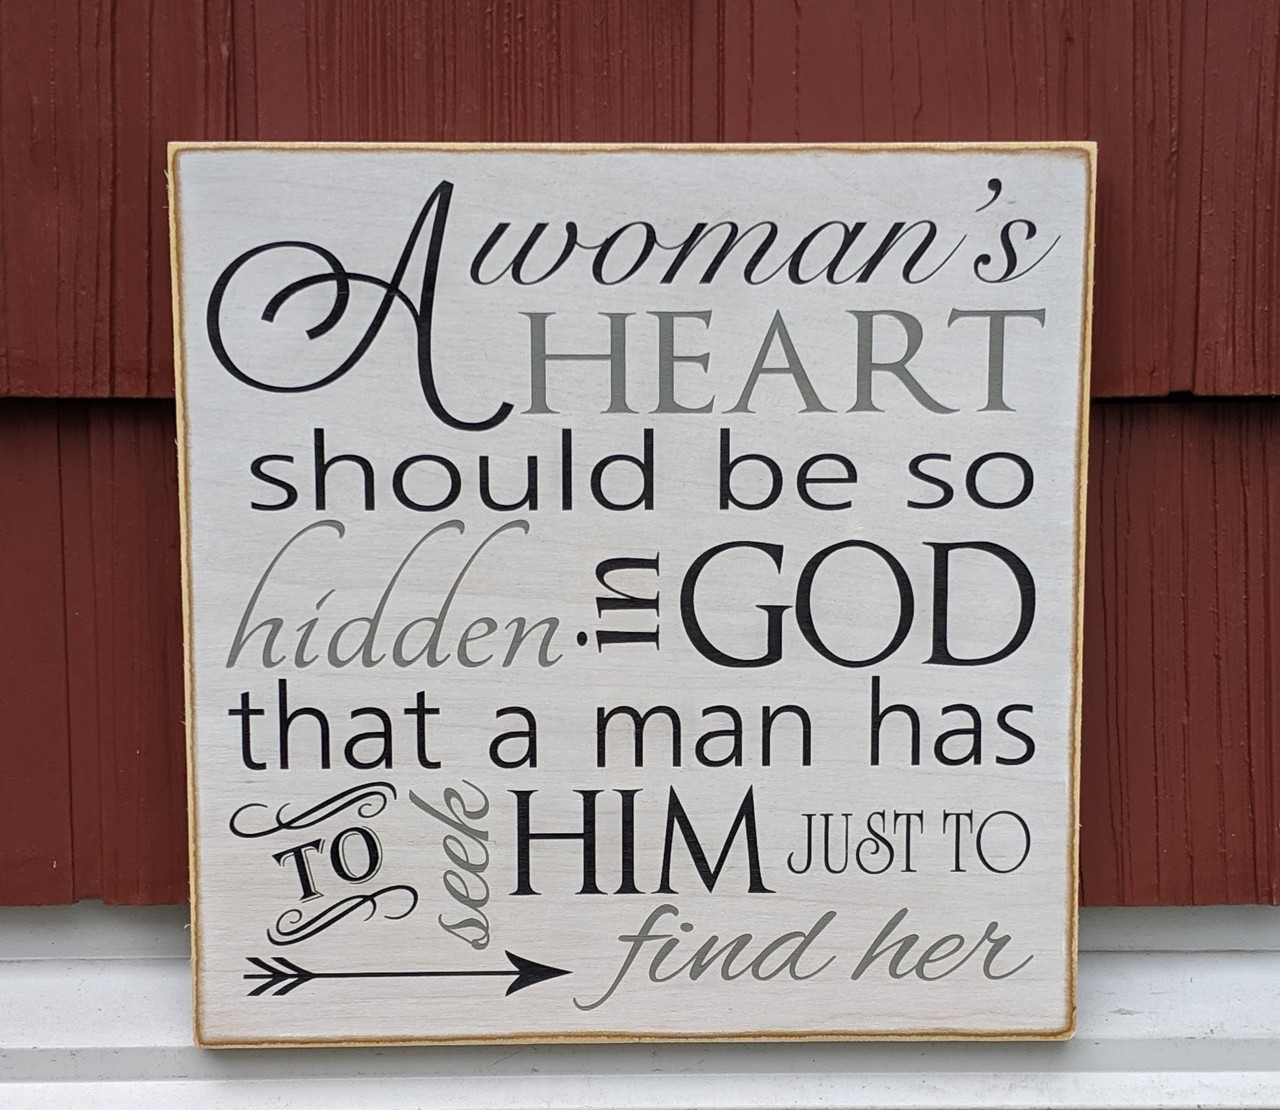 A woman's heart should be so hidden in God that a man has to seek Him just to find her - custom wood sign